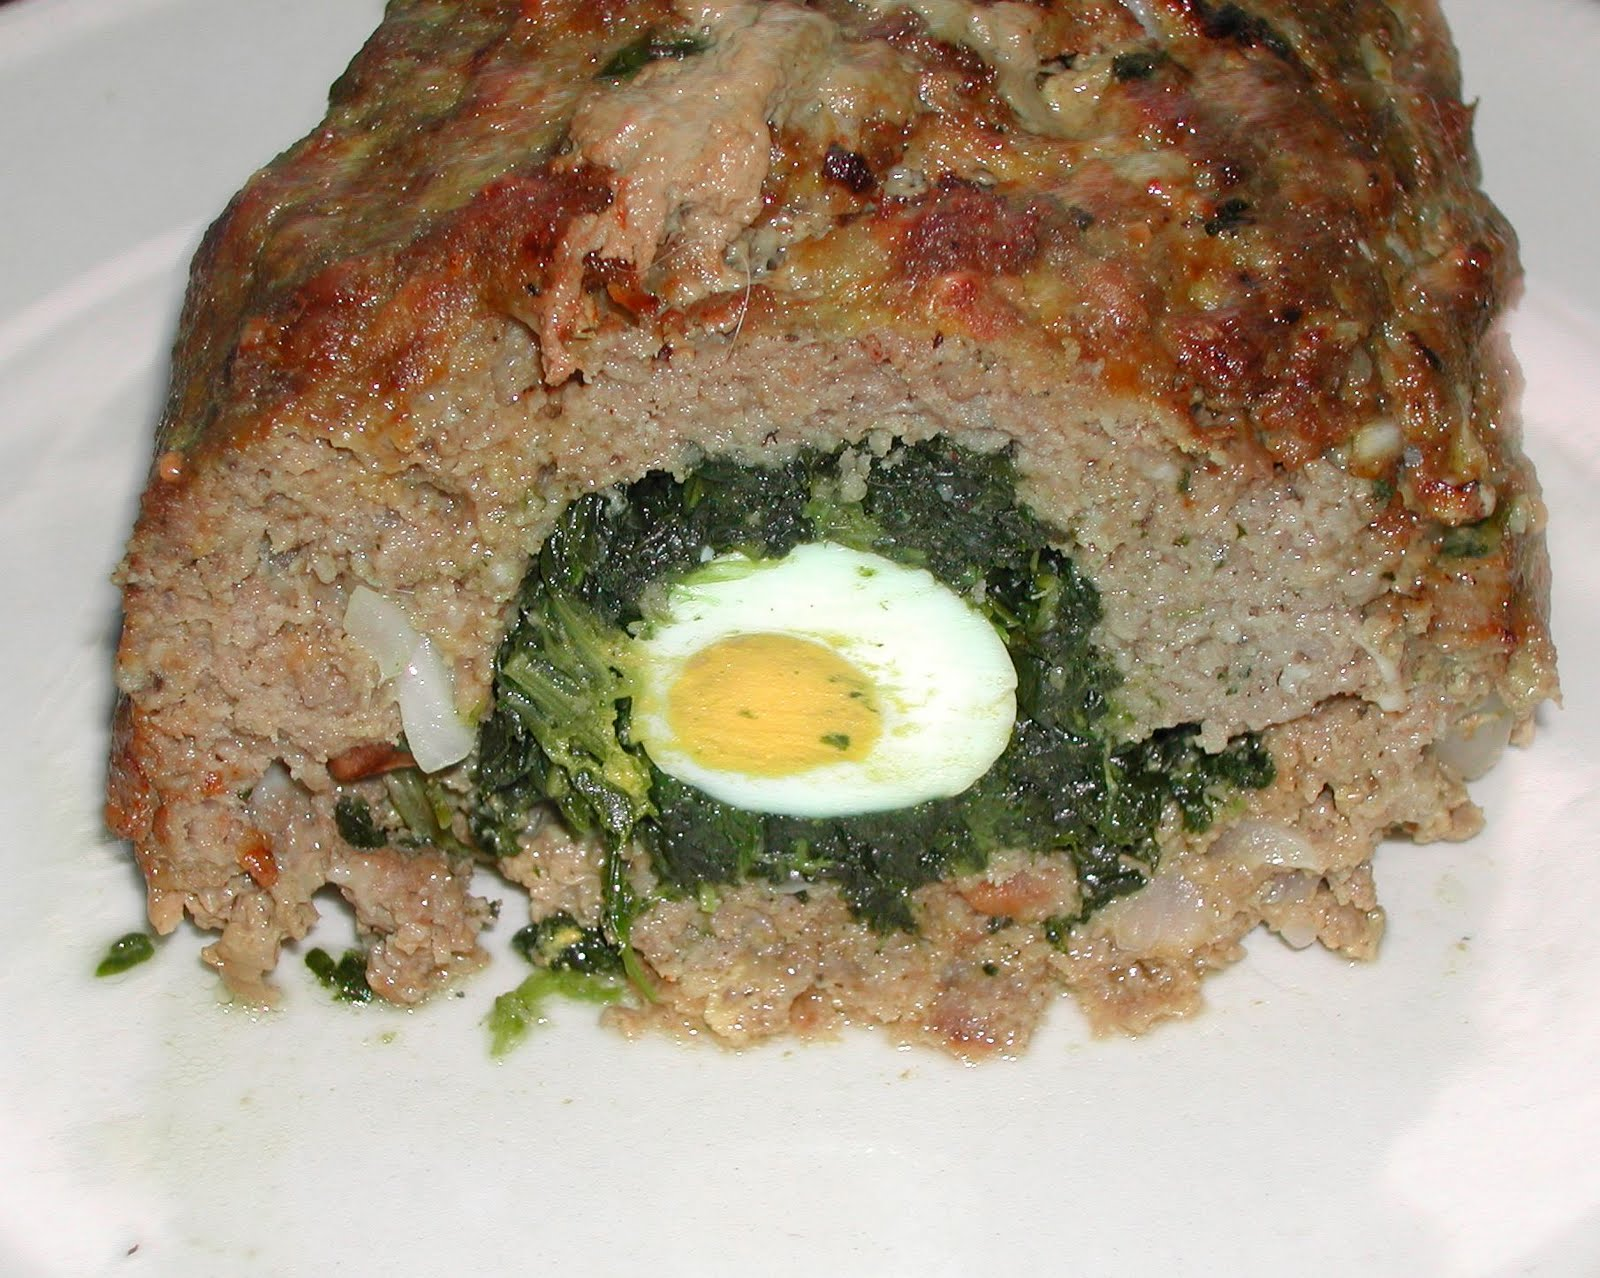 Lucindaville: Egg-and-Spinach-Stuffed Meat Loaf